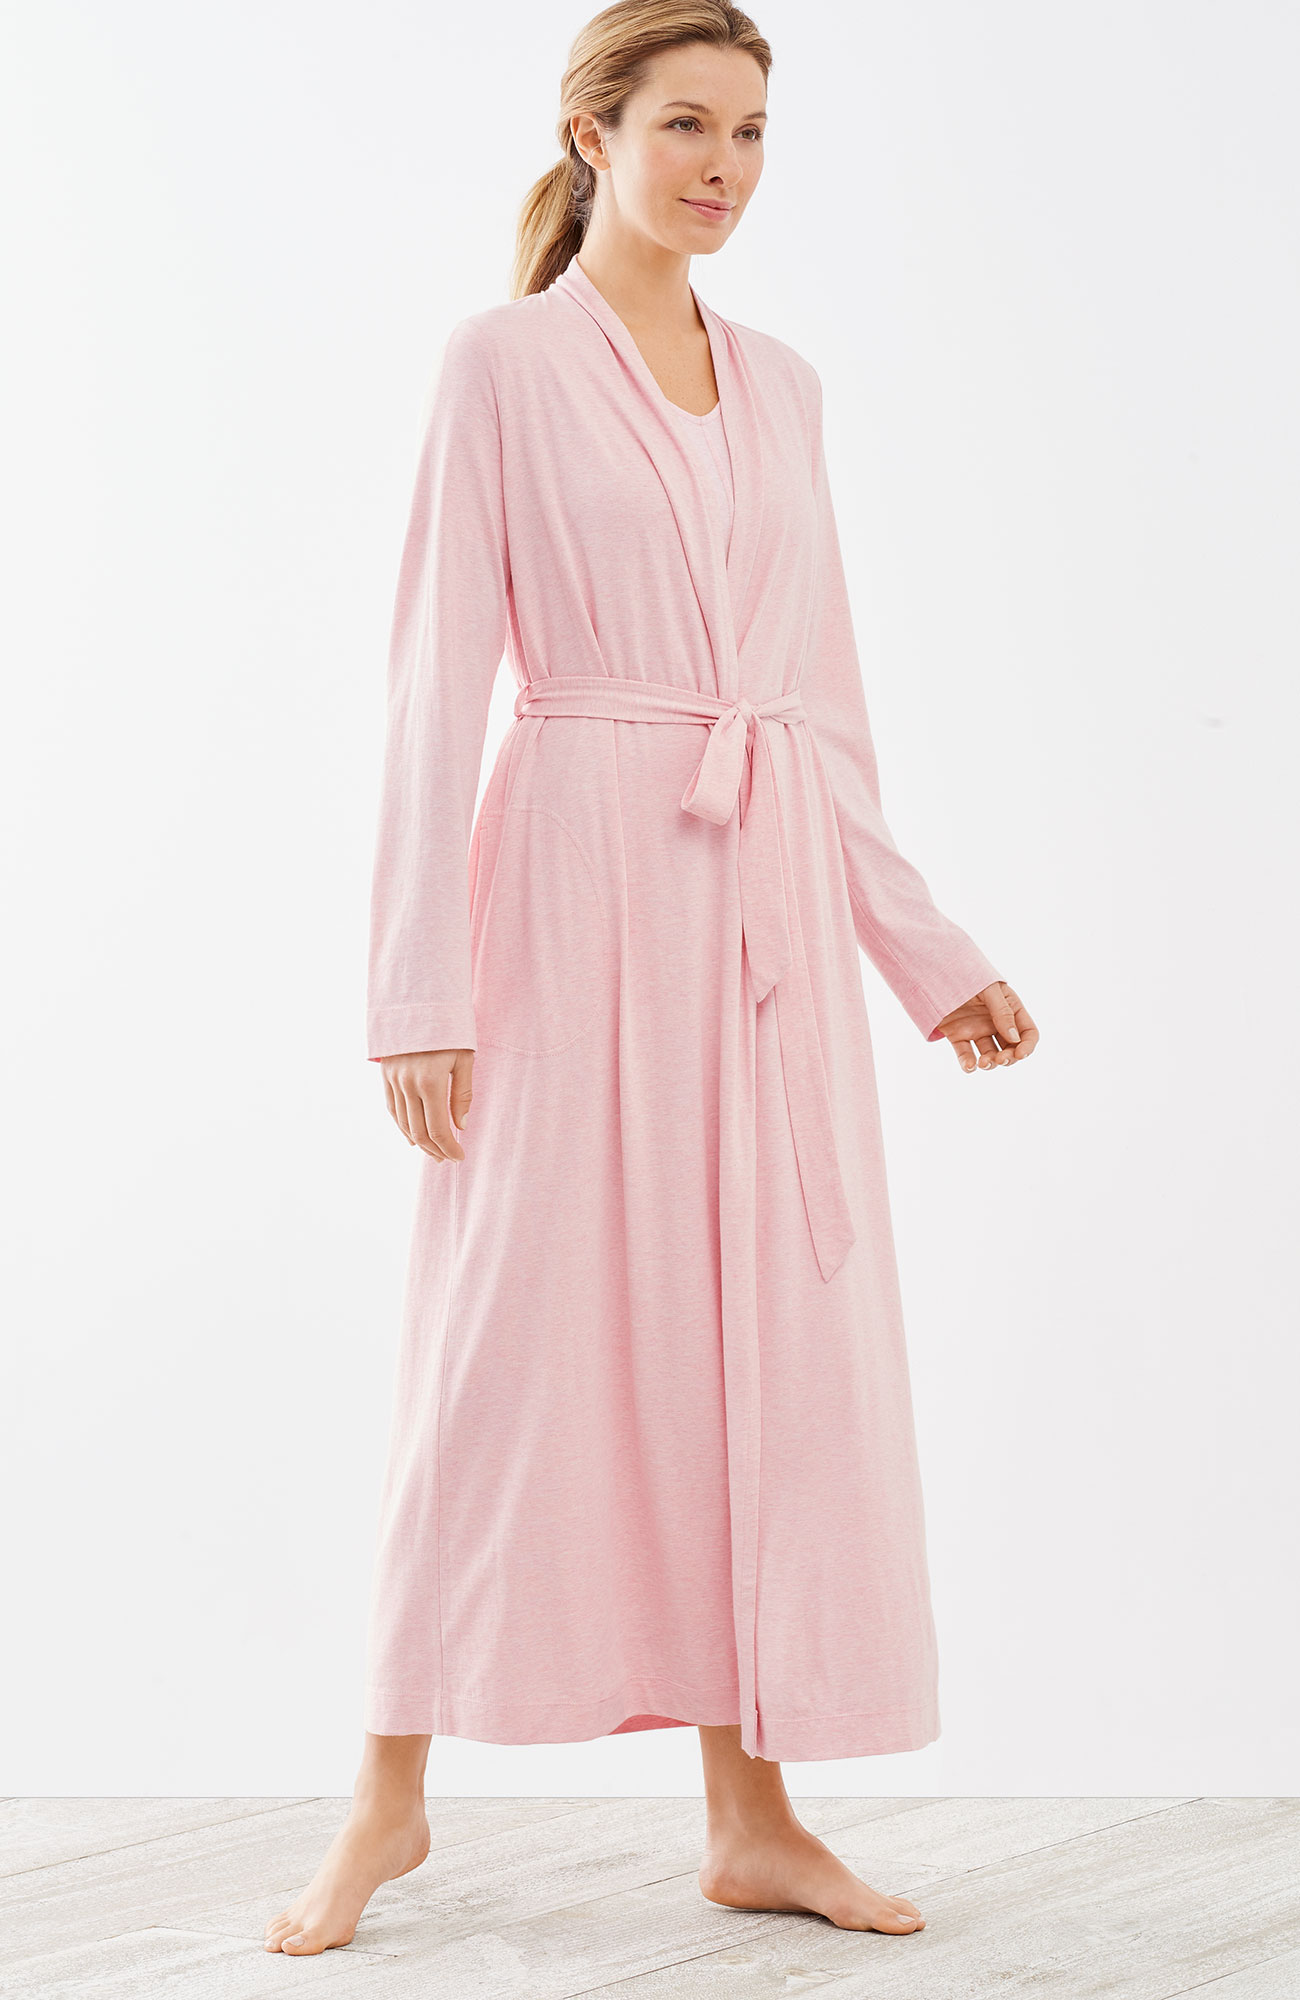 Pure Jill Sleep ultrasoft robe